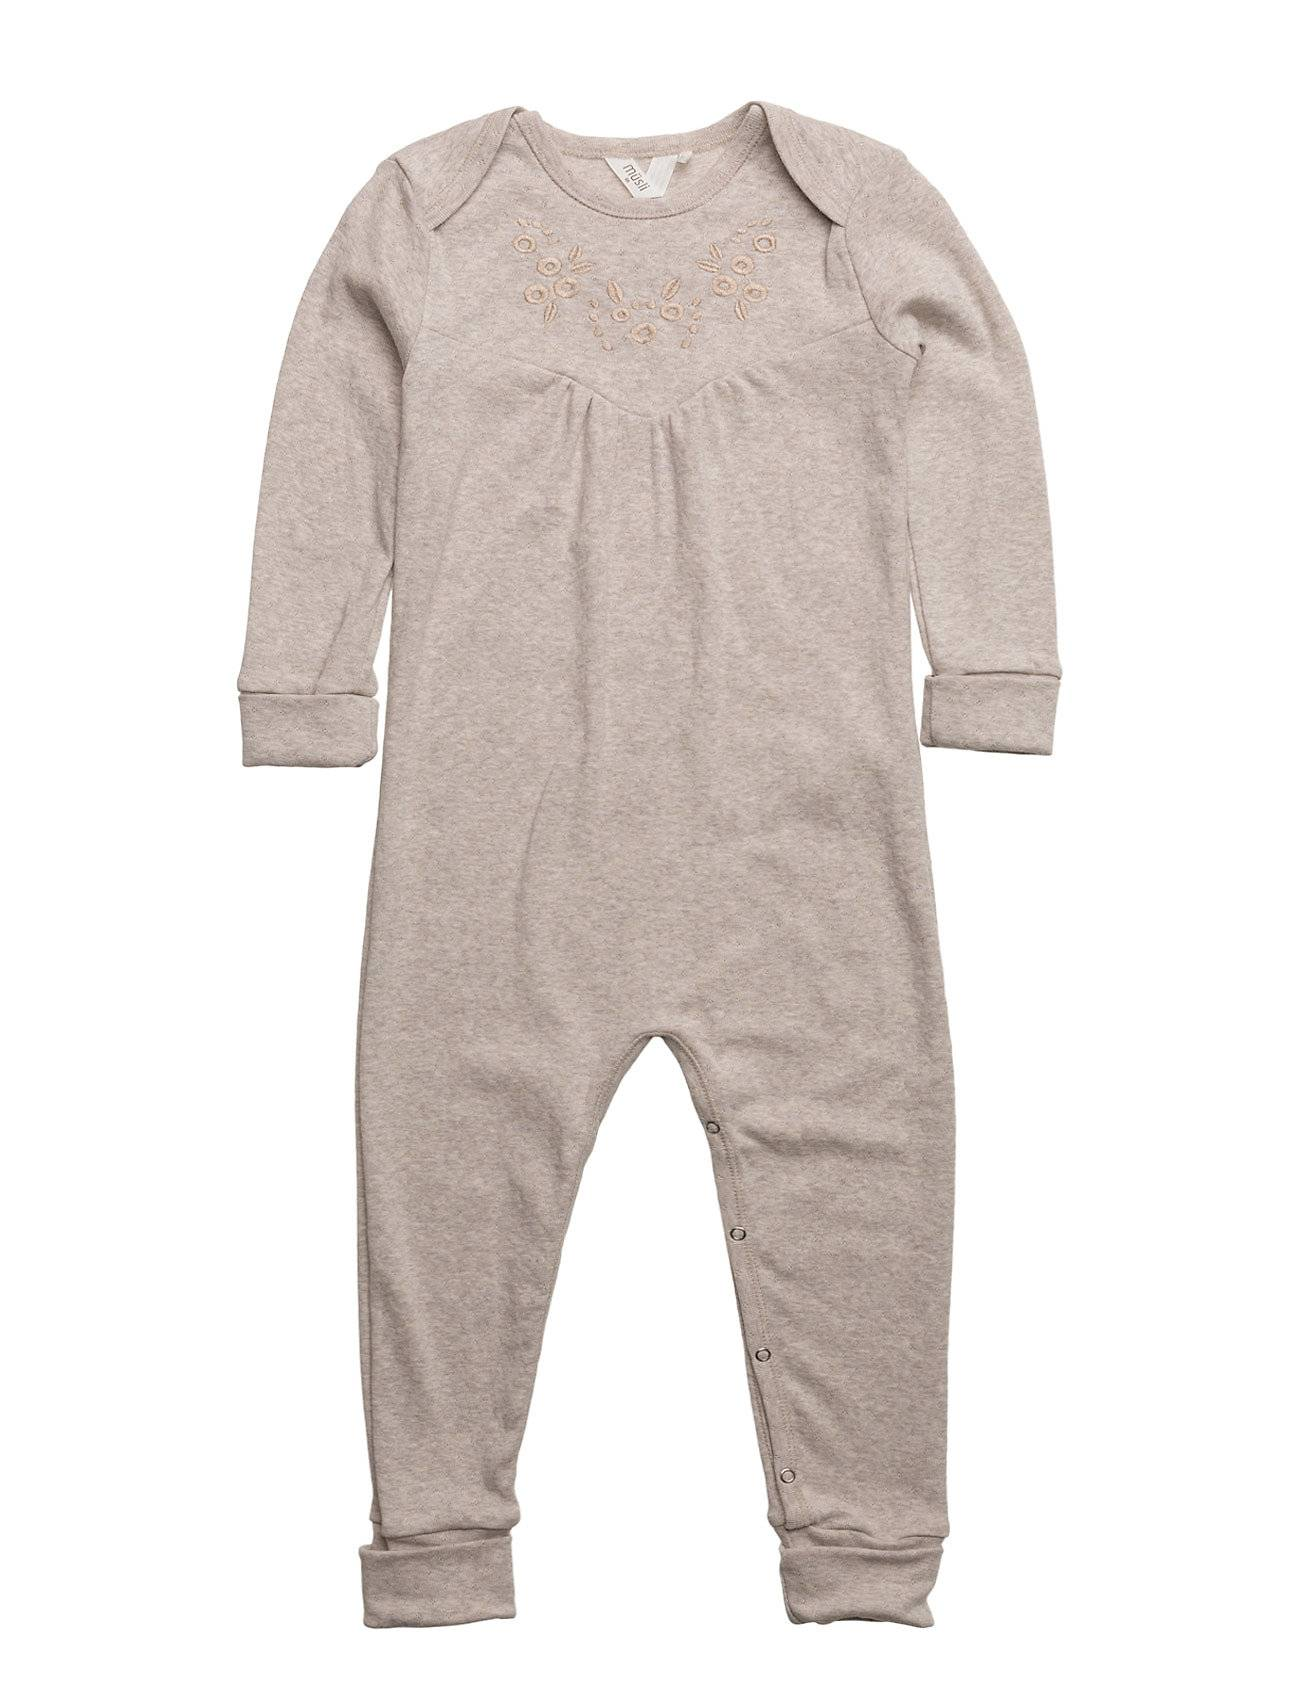 Müsli by Green Cotton Bedtime Bodysuit Girl